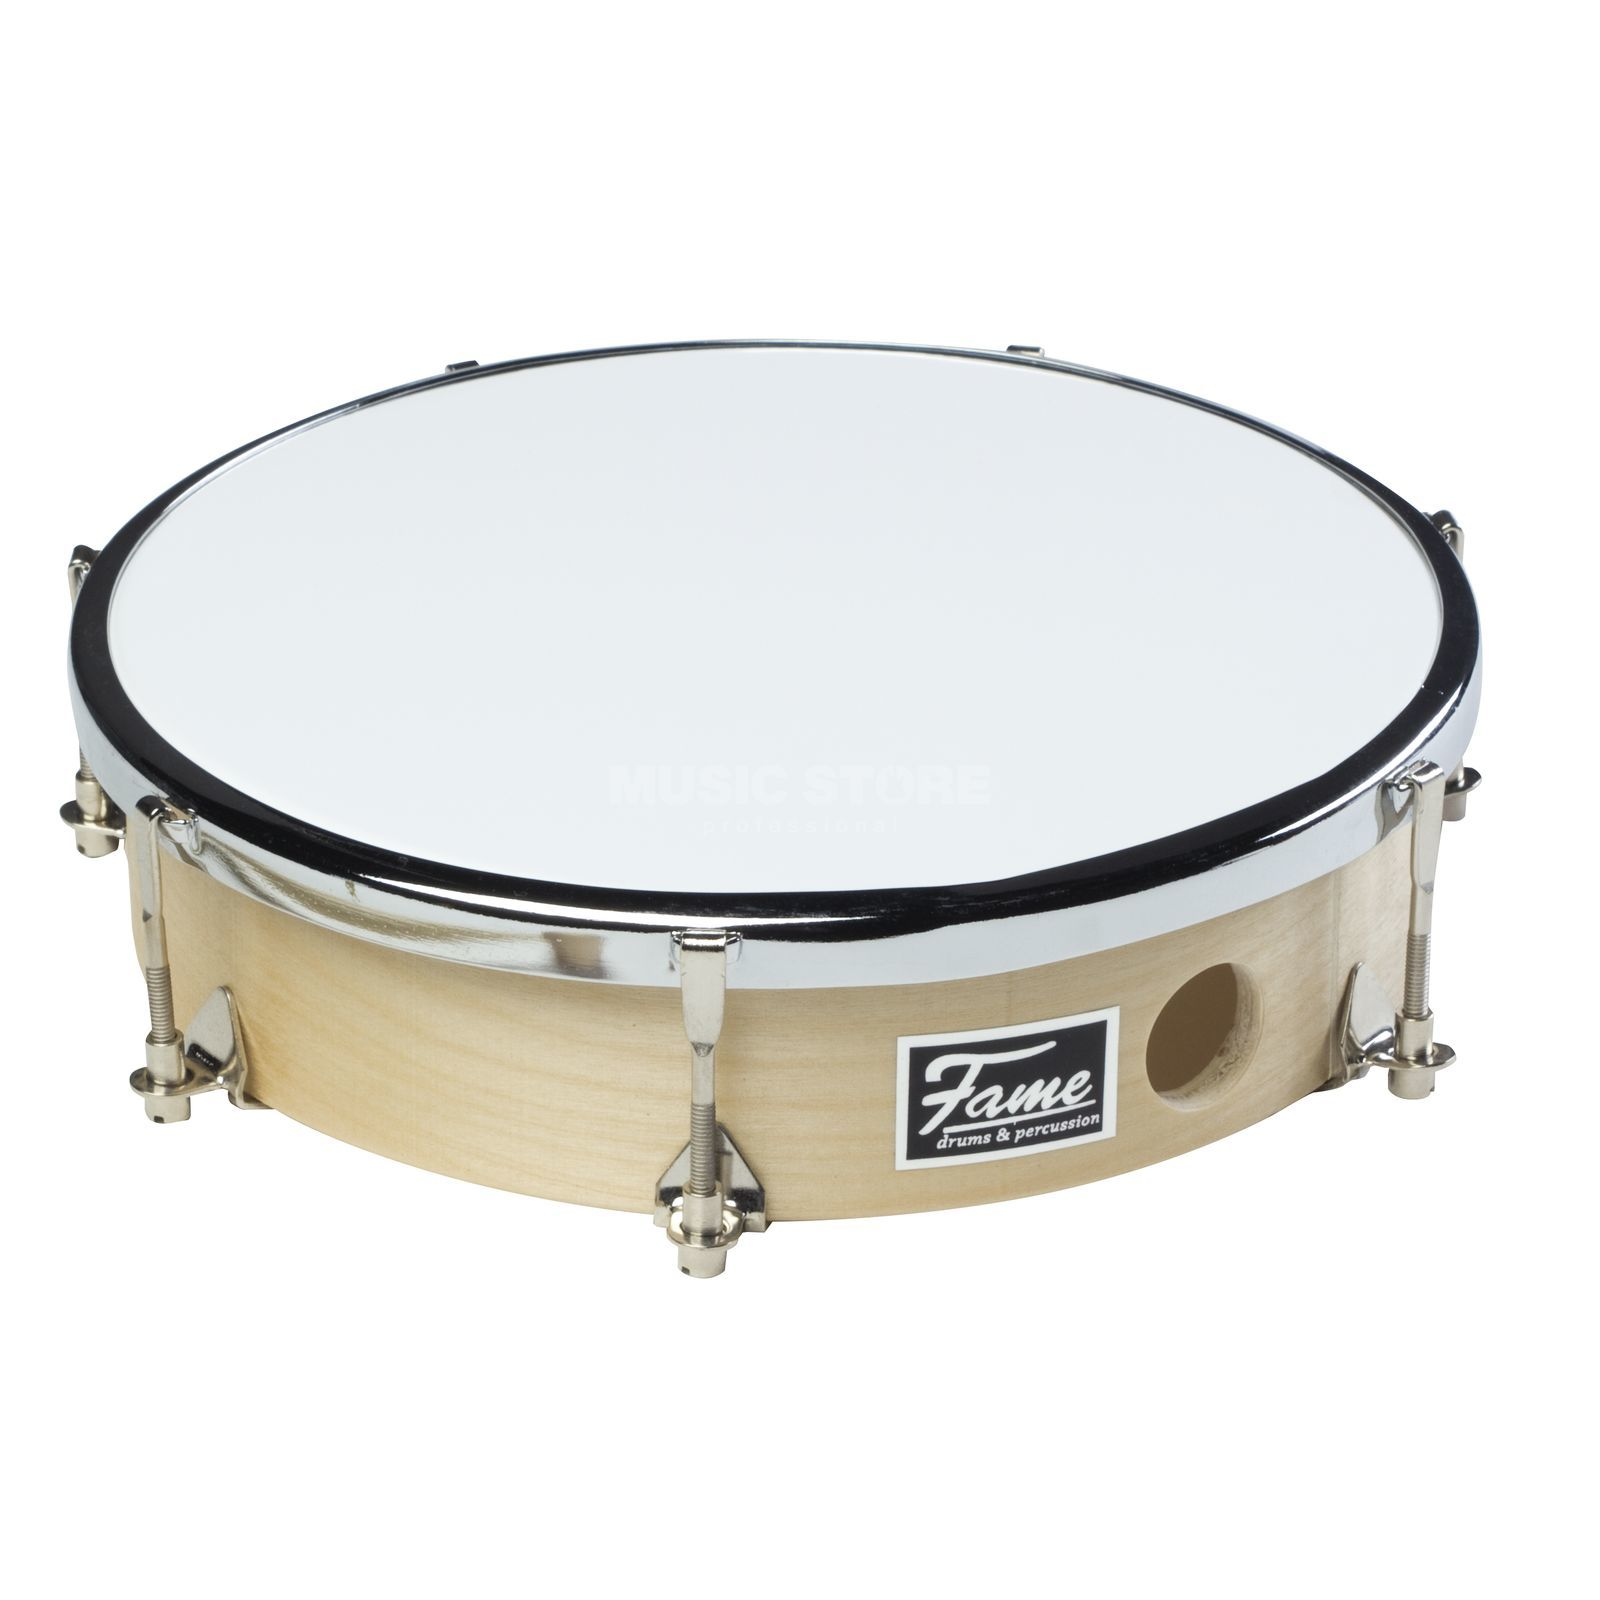 "Fame Frame Drum 8"" Mechanical Tuning Produktbillede"